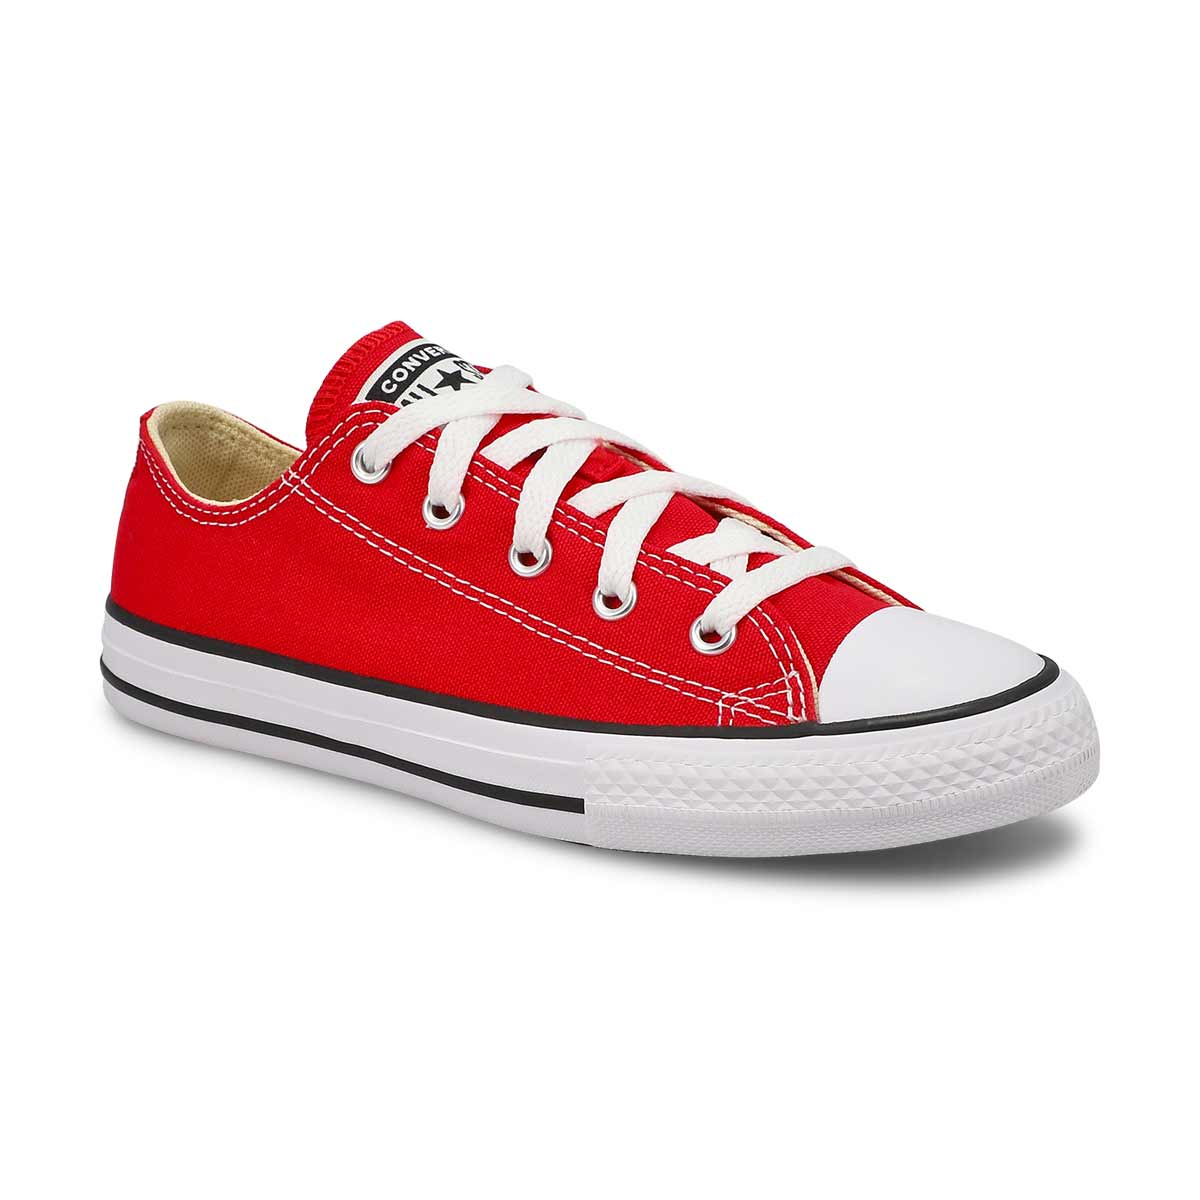 Espadrilles CHUCK TAYLOR ALL STAR, rouge, enfants